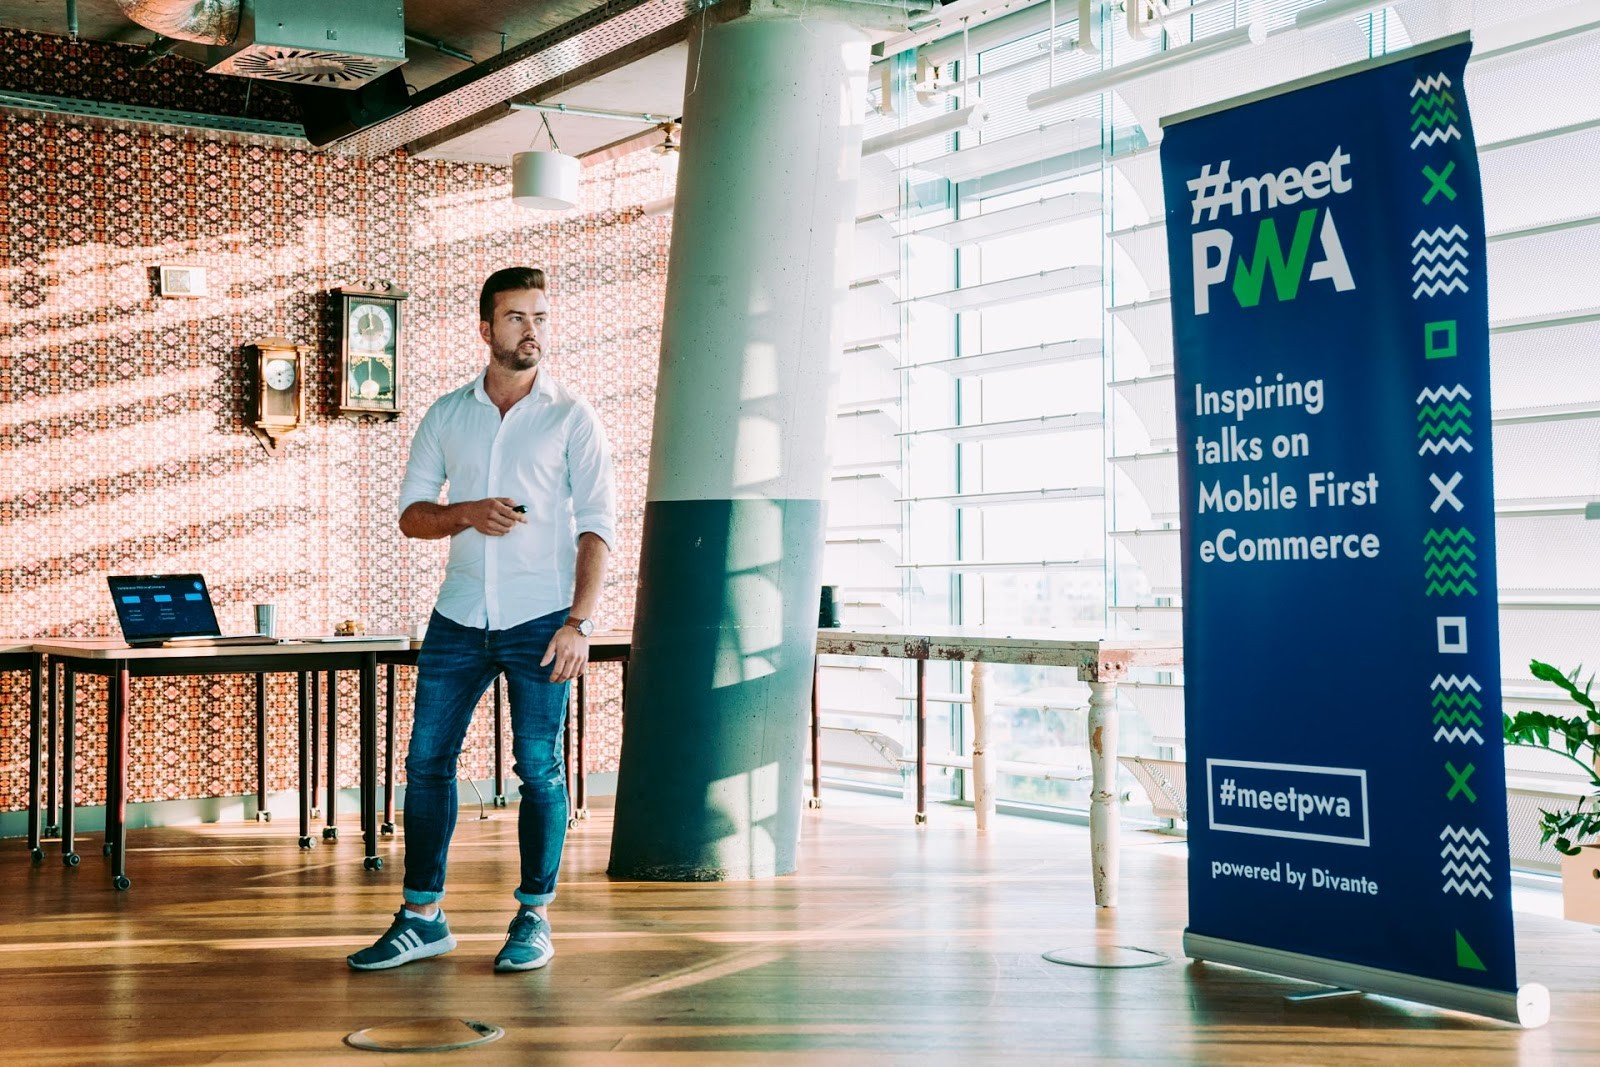 Dominic Klein, Technical Specialist at Shopware AG during #MeetPWA in Berlin. Events like this are a great occasion to build the community, share knowledge, and exchange views